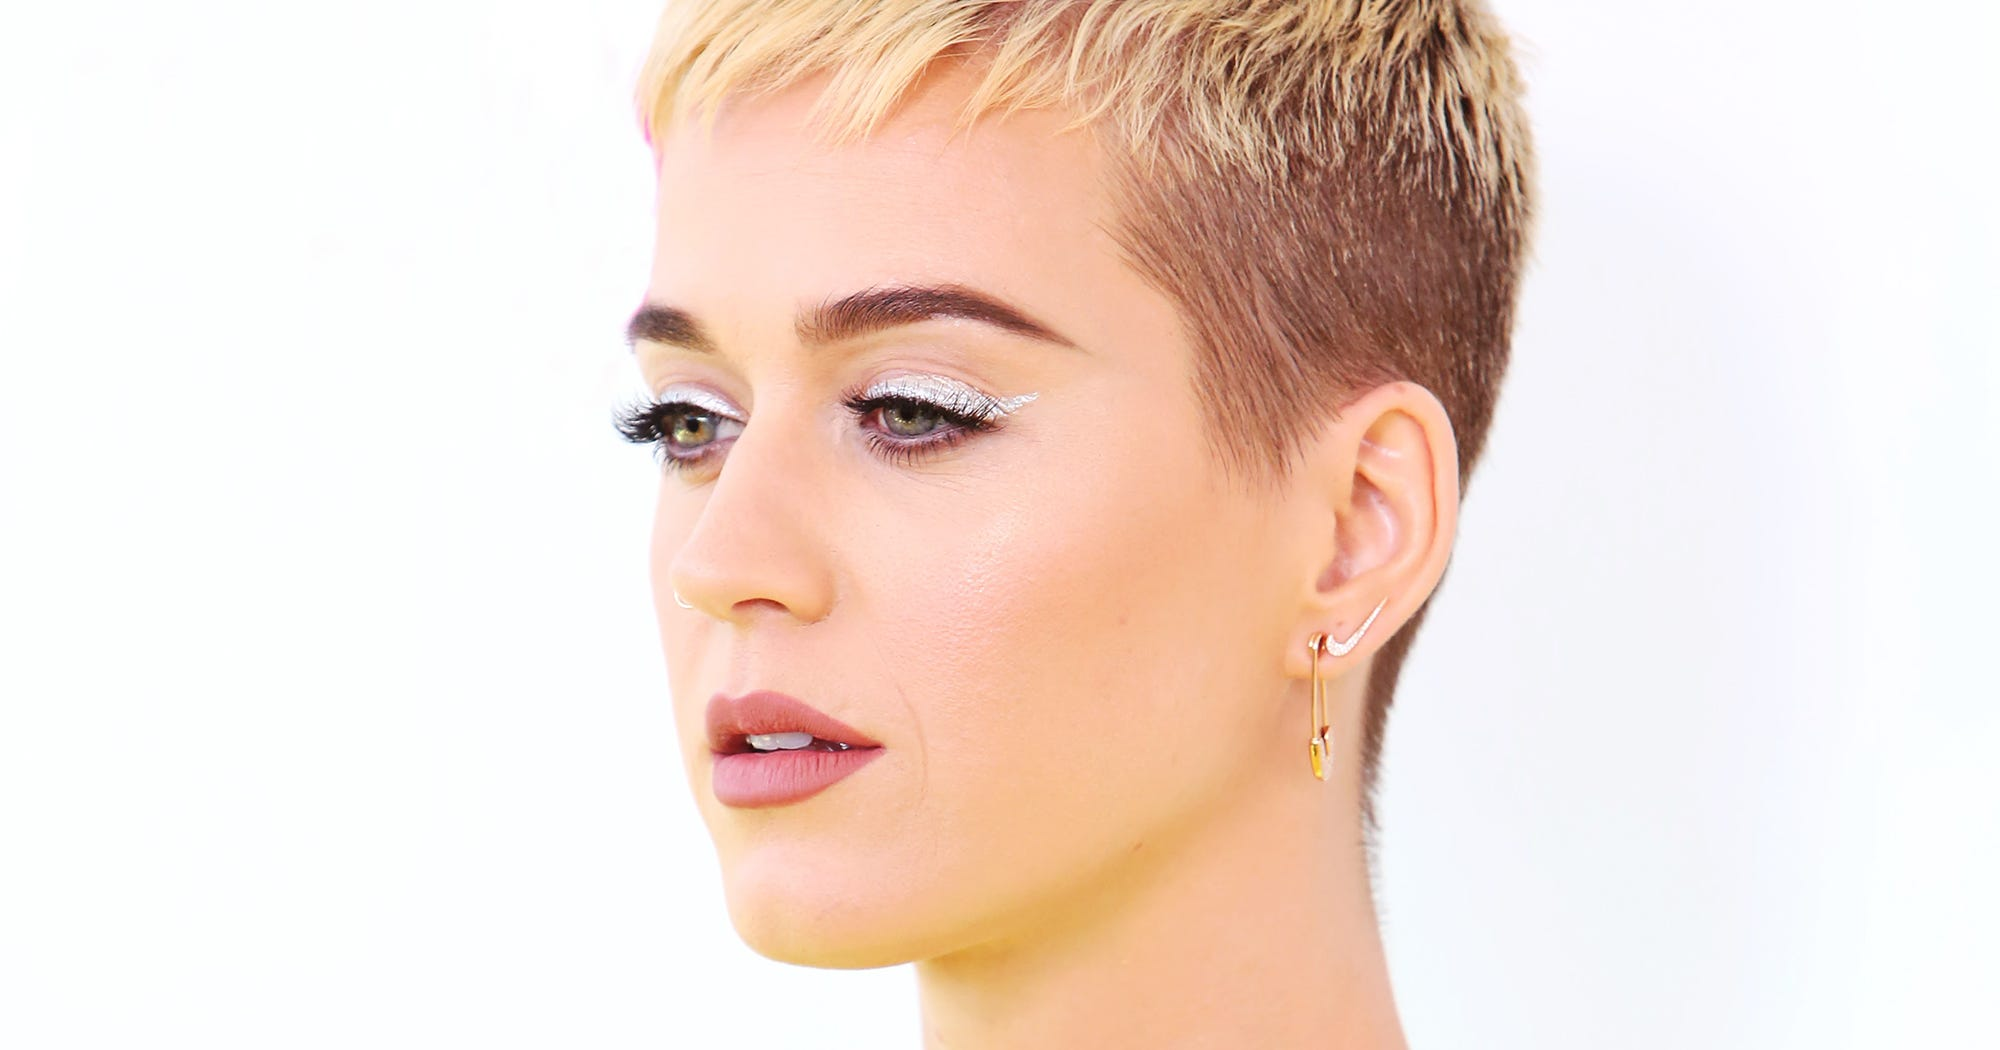 katy perry pixie hair cut reason mental health